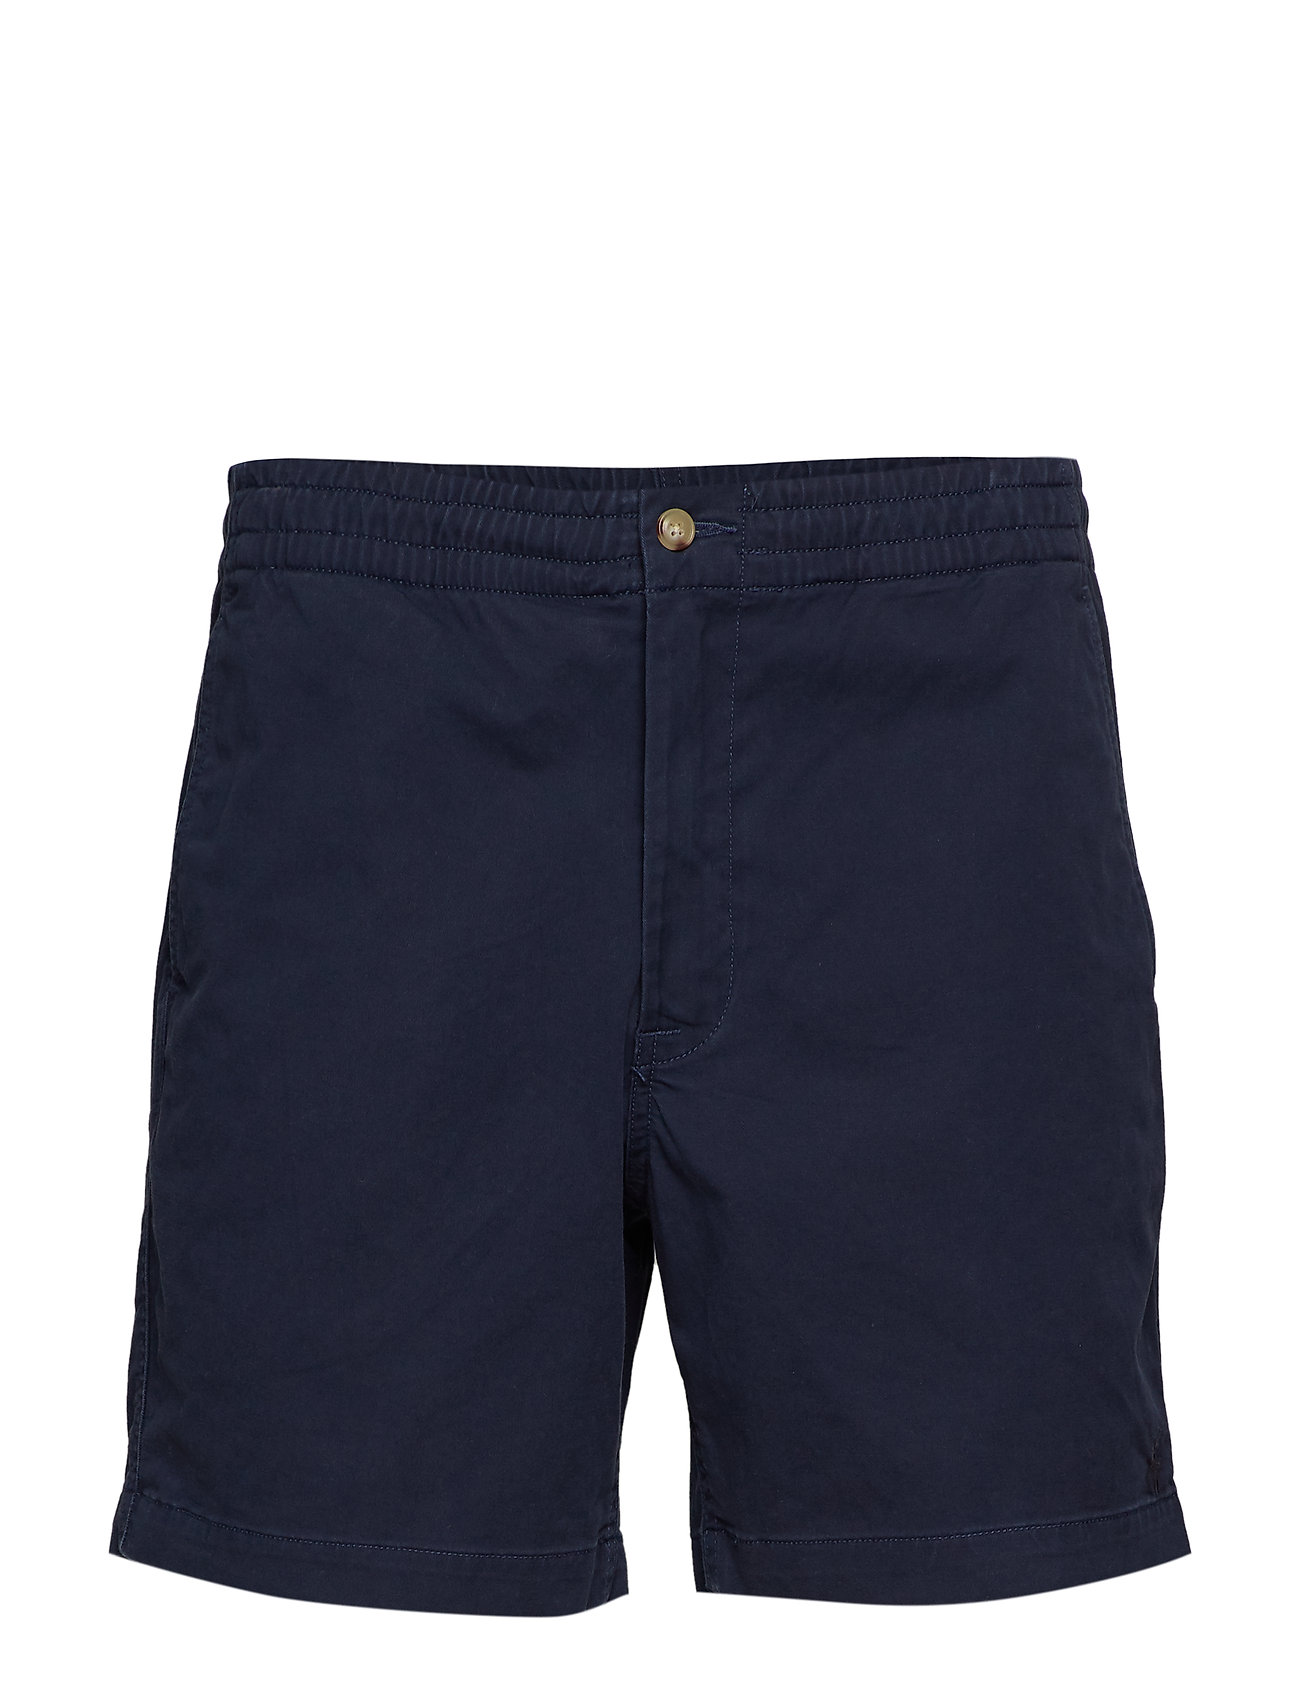 Polo Ralph Lauren Classic Fit Polo Prepster